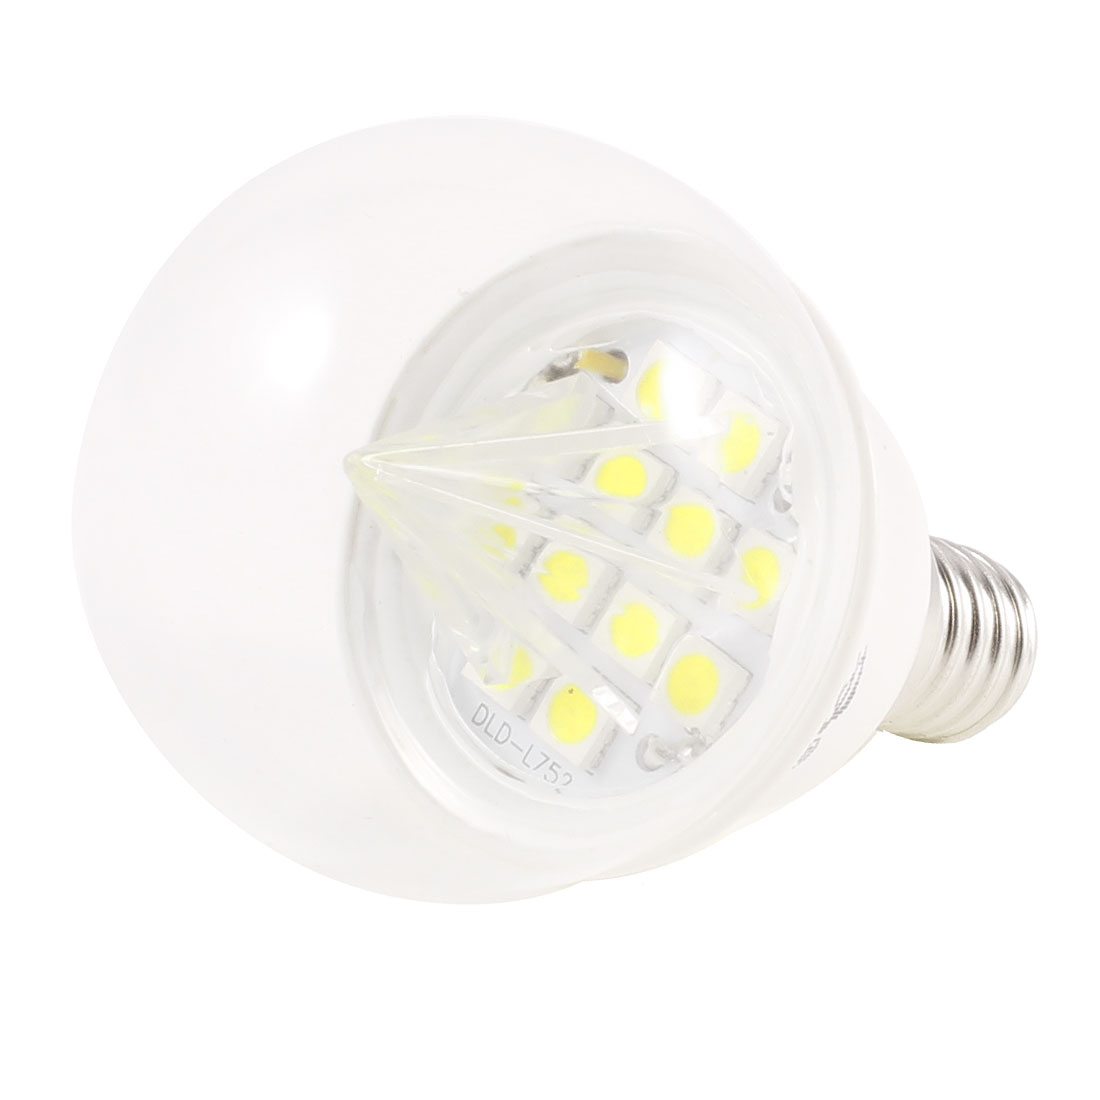 E14 Socket White 12 LEDs Light Globe Ball Bulb 2W AC 220V 6500K